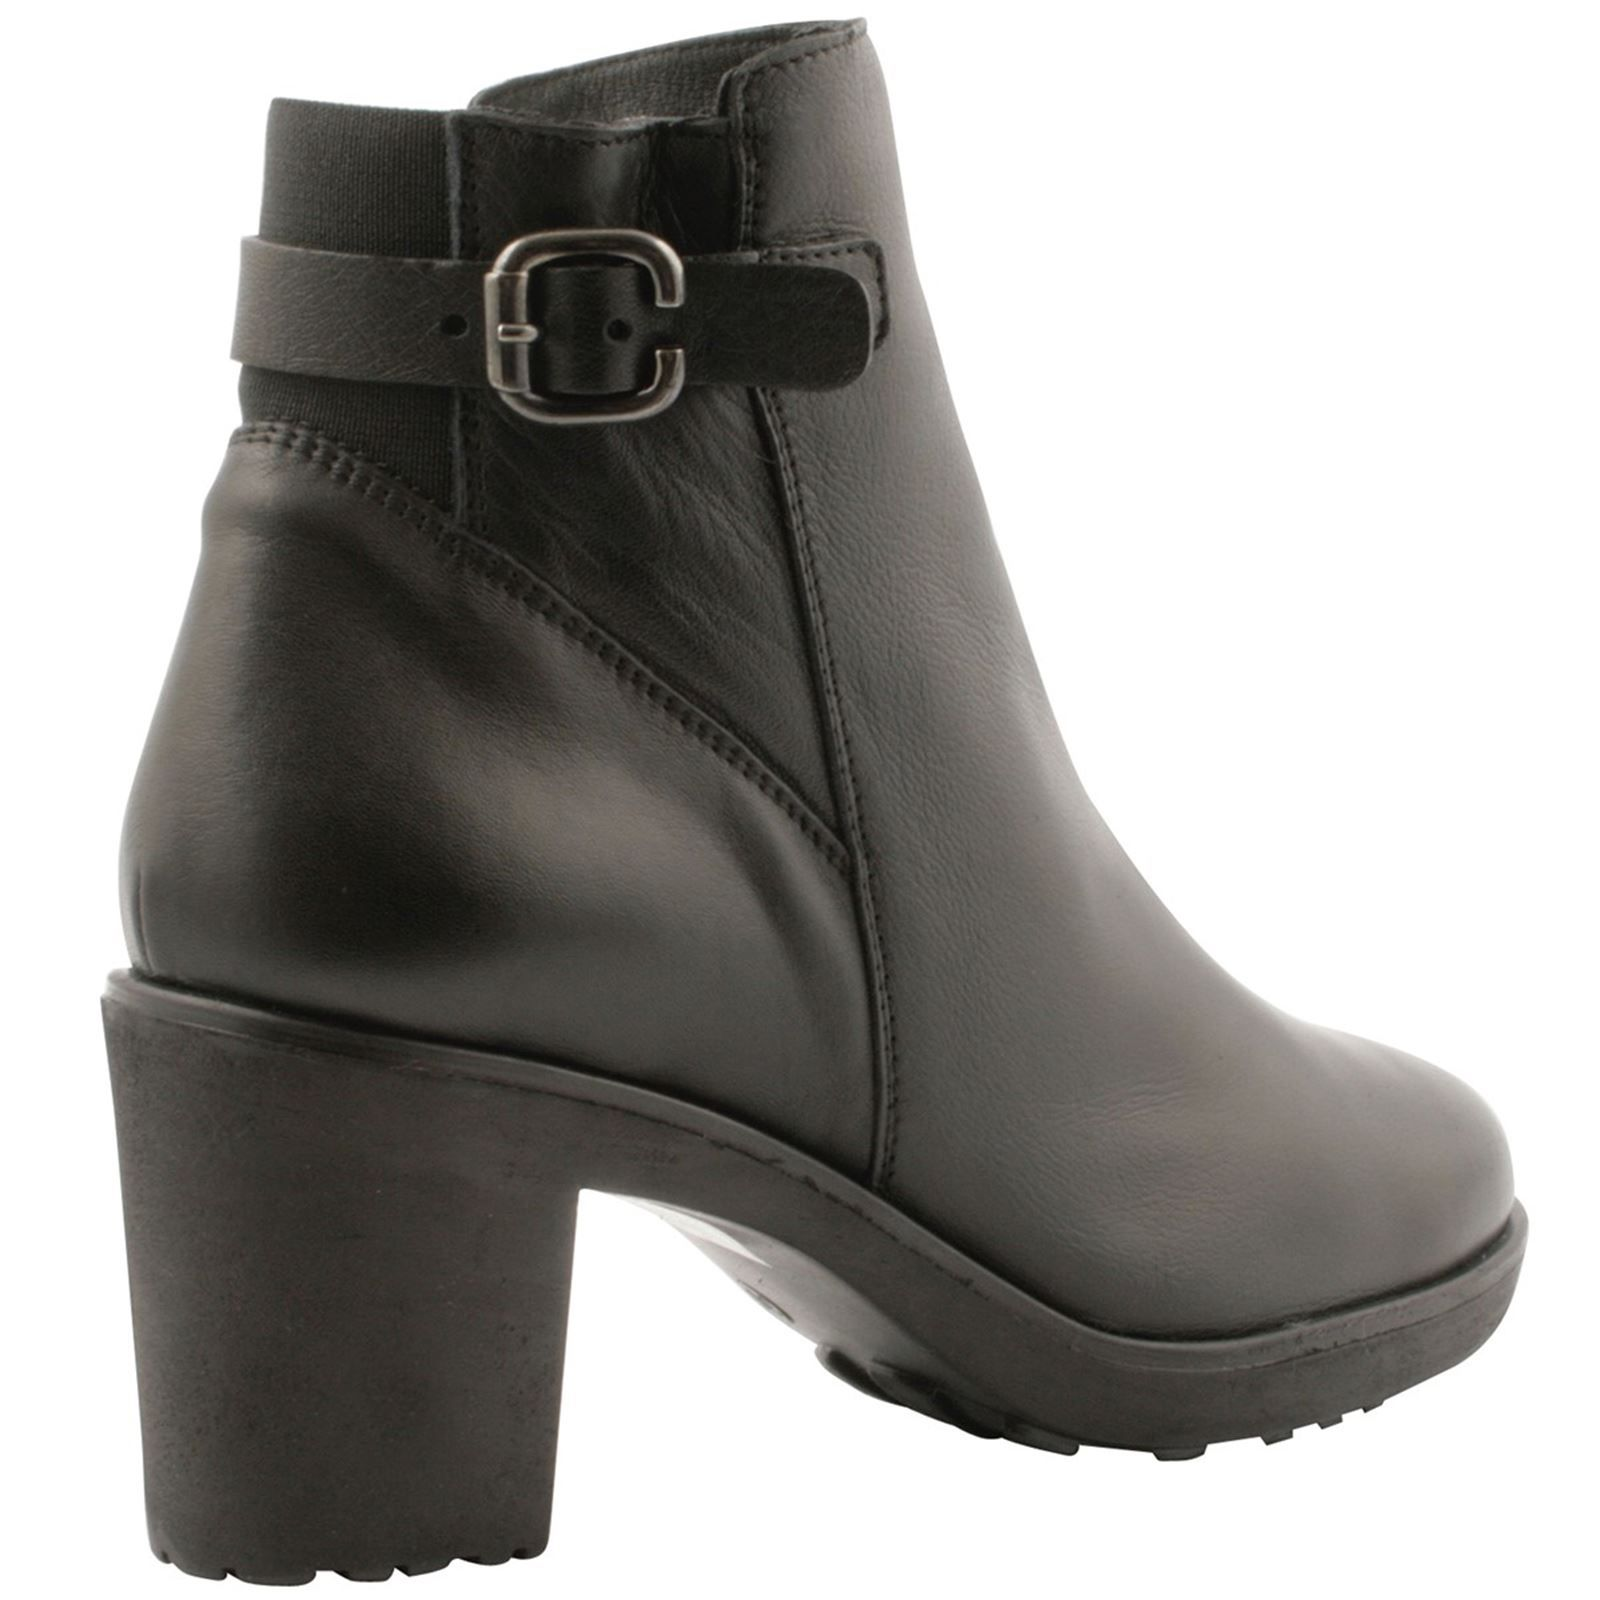 Exclusif Paris Sibyl - Bottines en cuir - noir